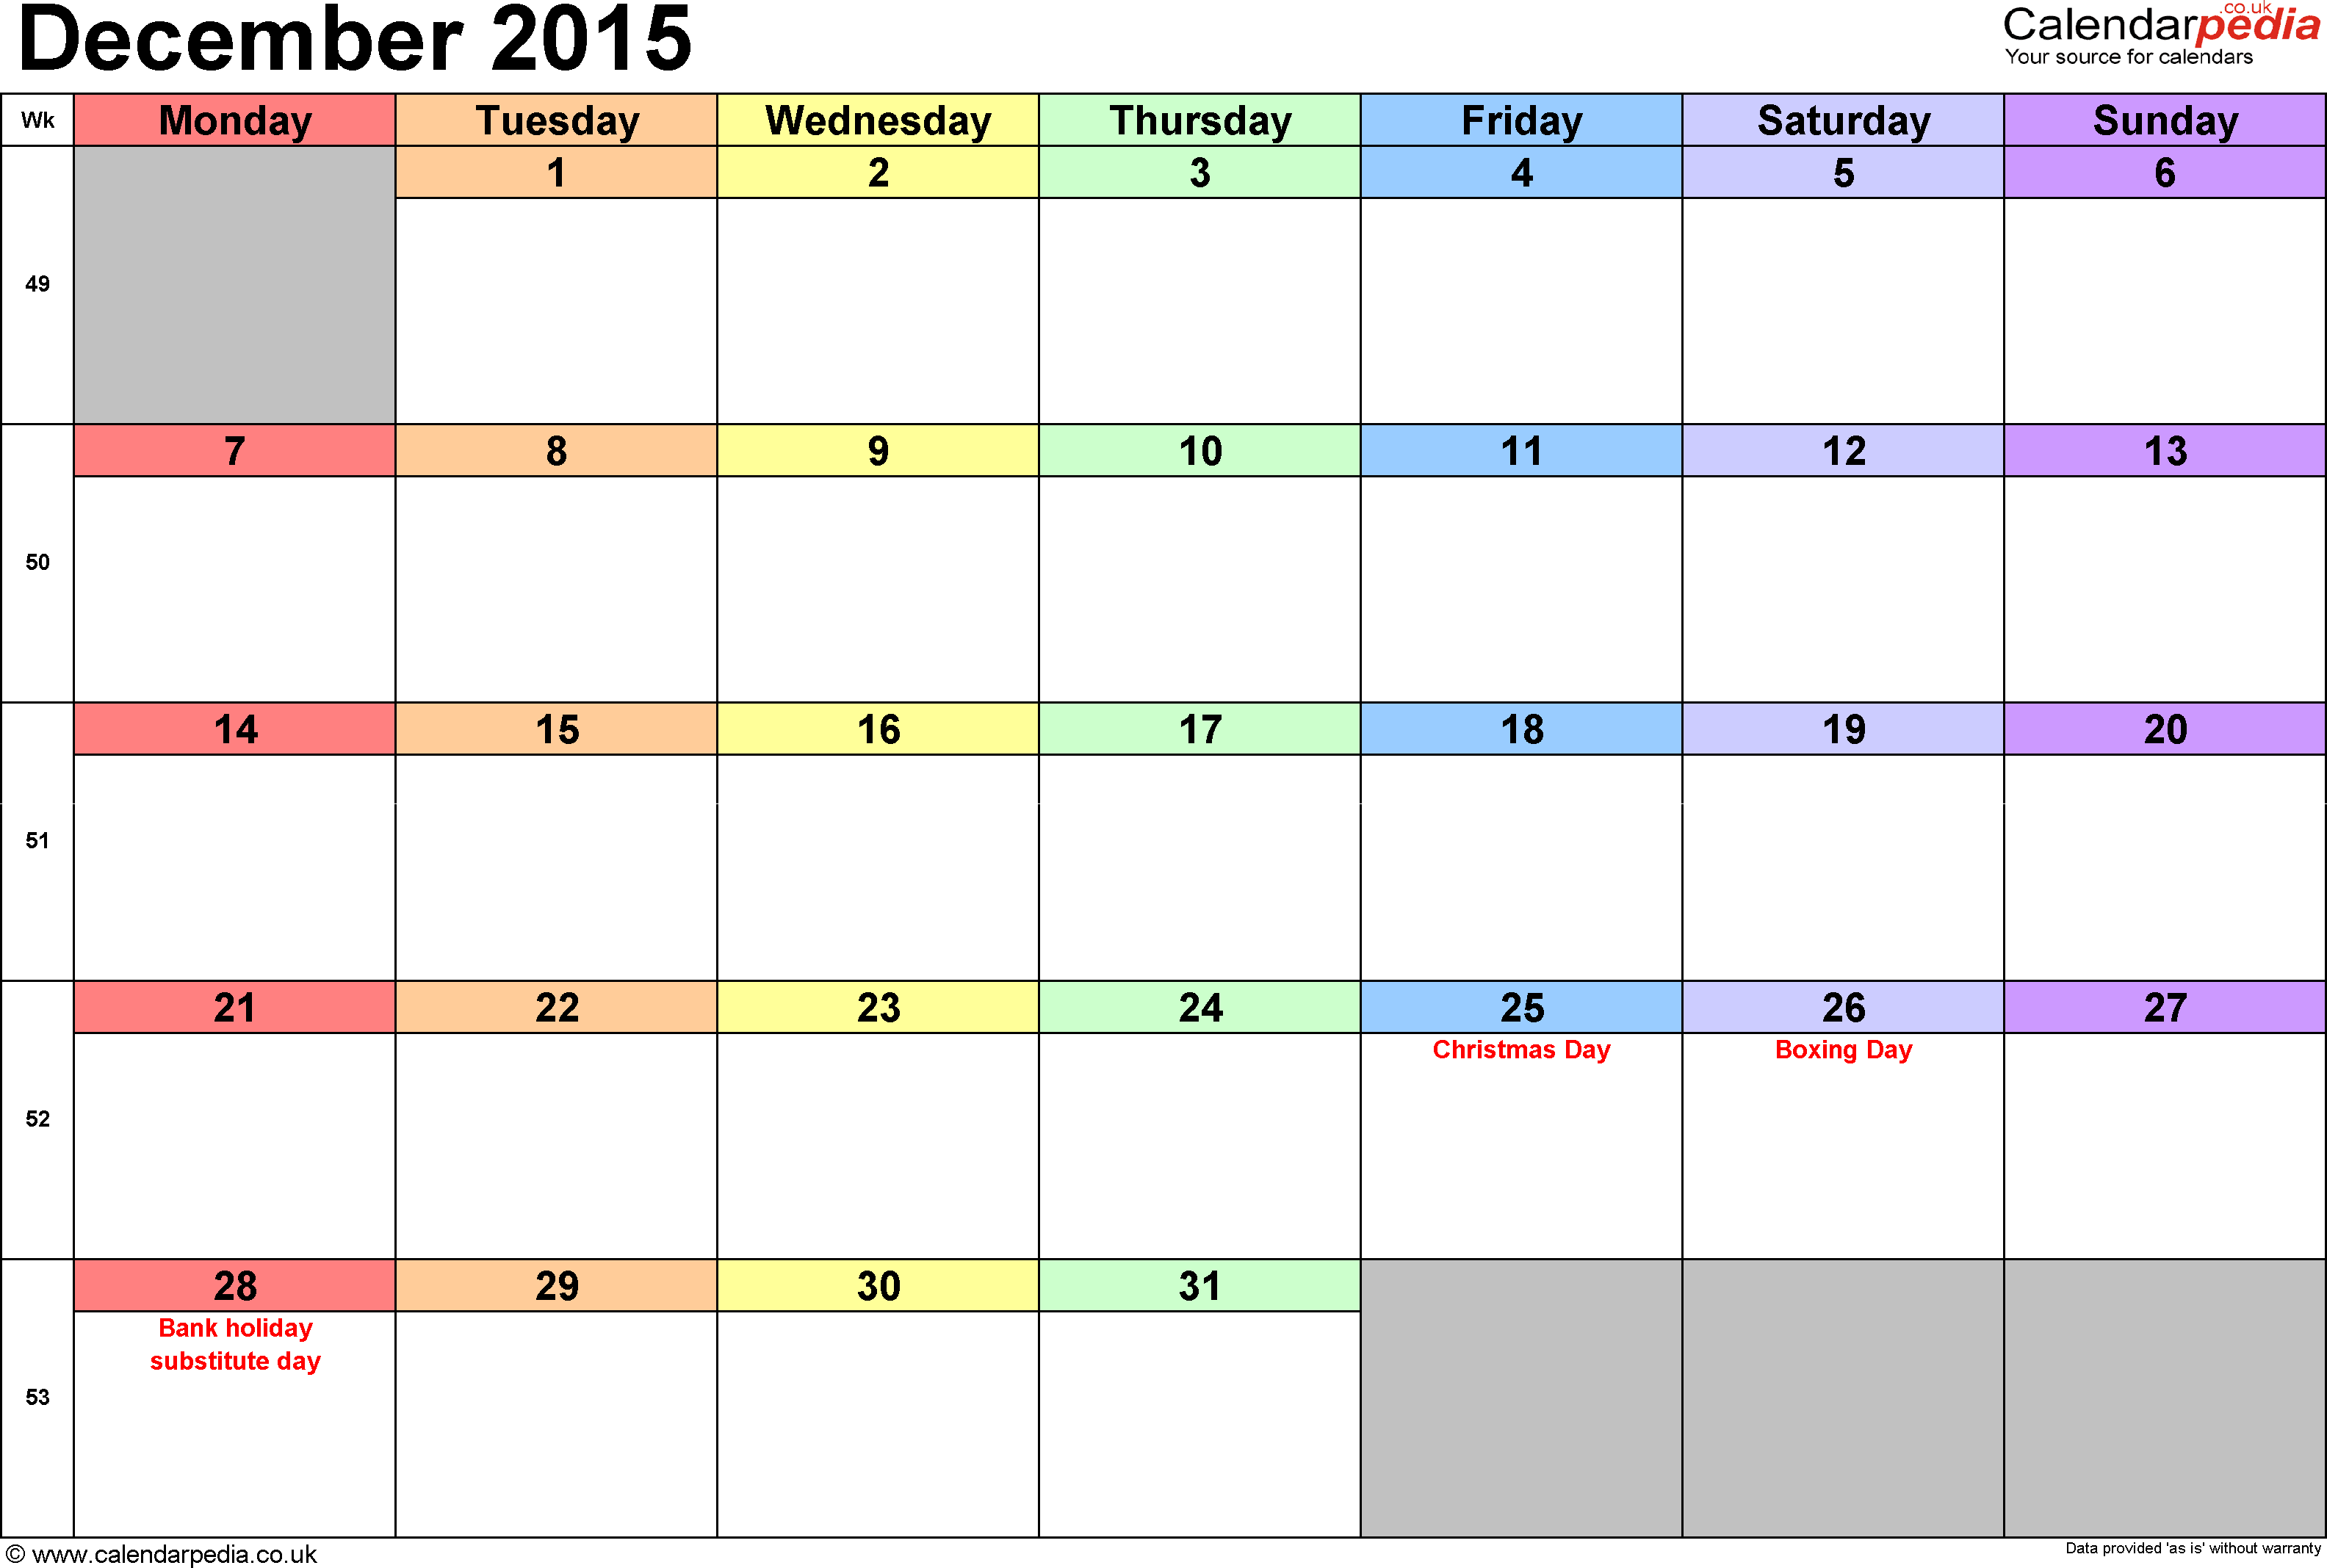 Calendar December 2015, landscape orientation, 1 page, with UK bank holidays and week numbers